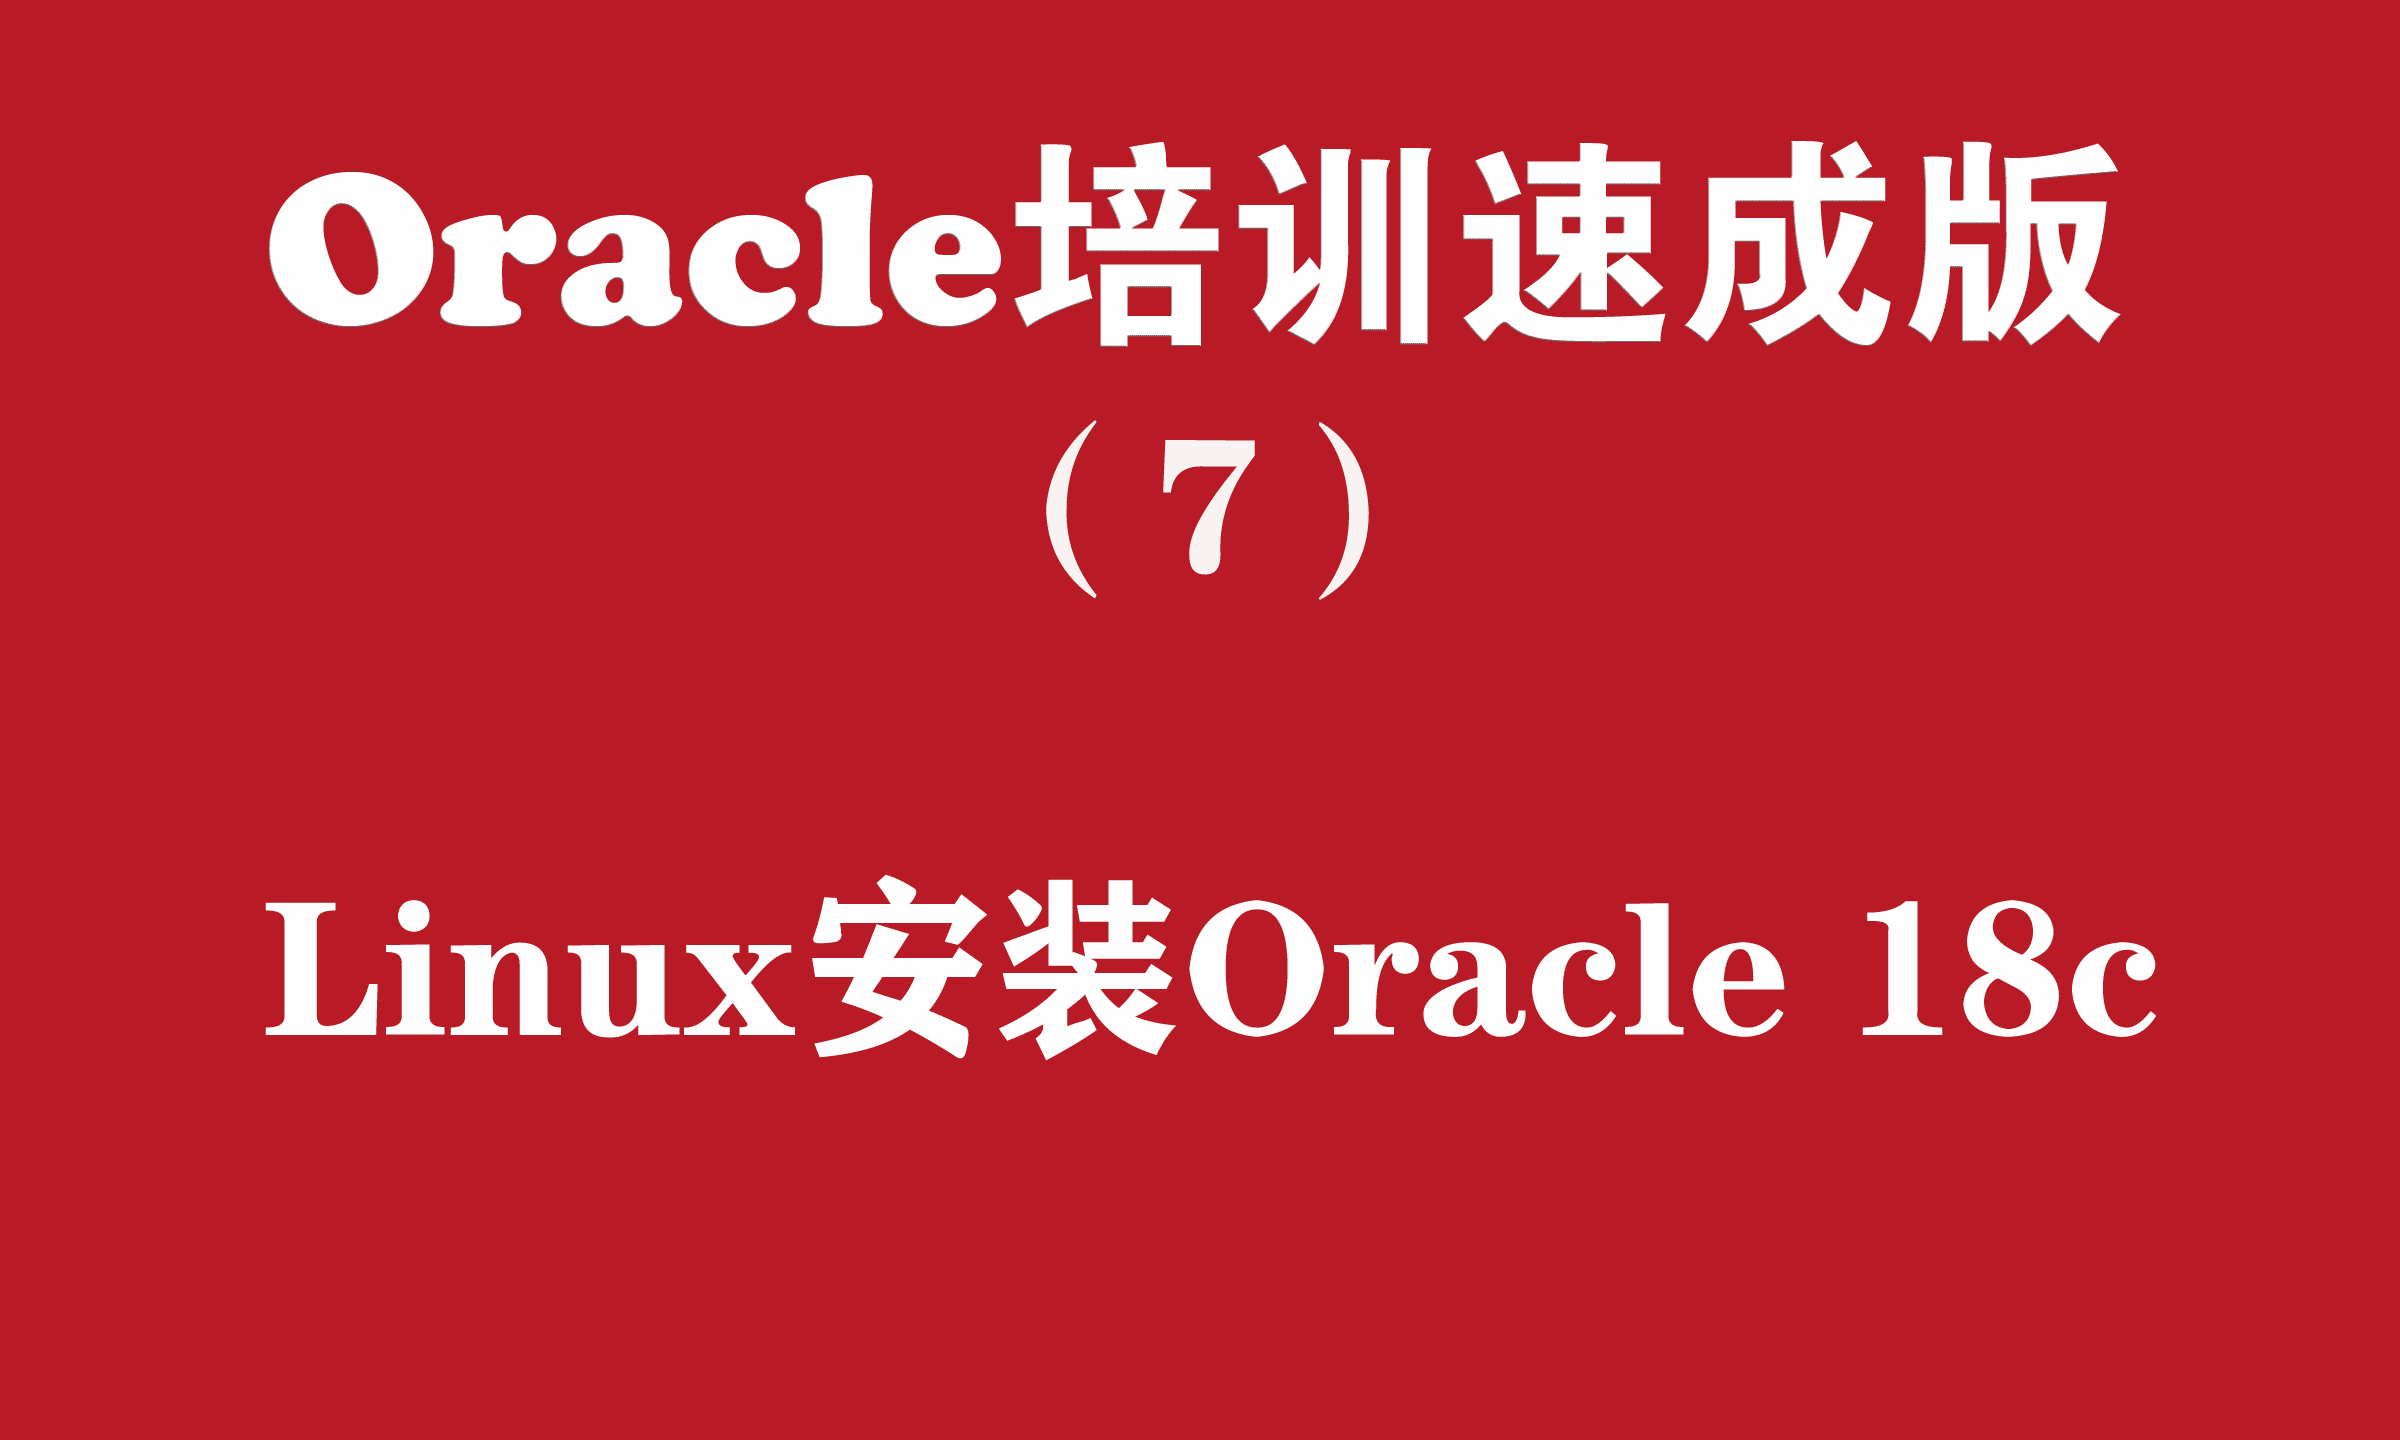 Oracle入门培训教程(7):Linux安装Oracle18c